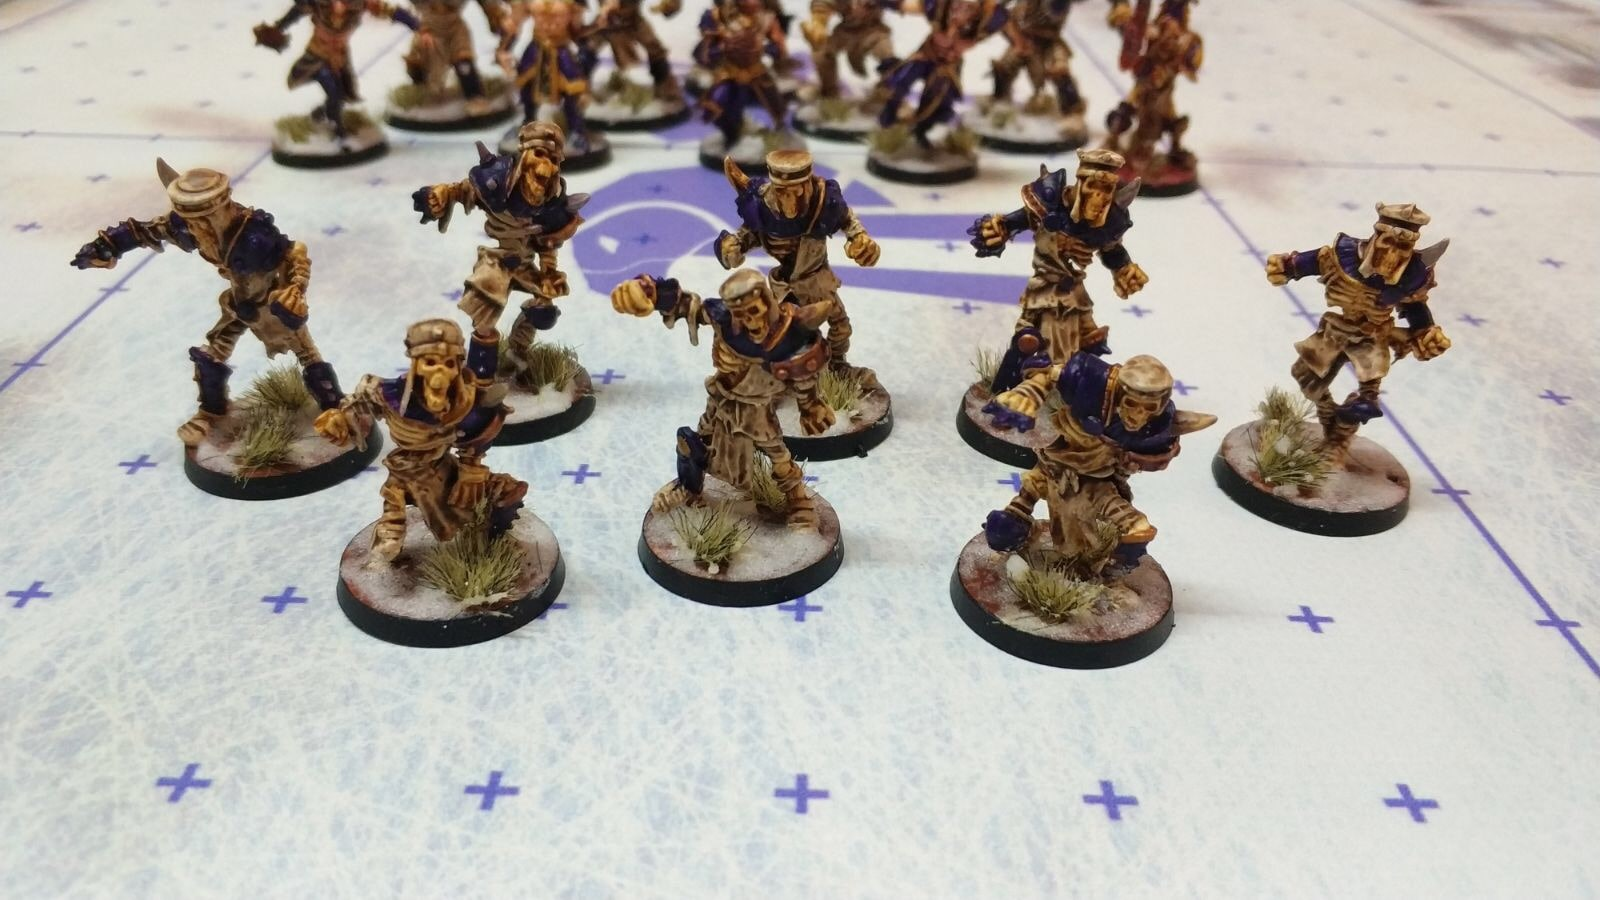 Equipo de khemry de Willy miniatures (4)